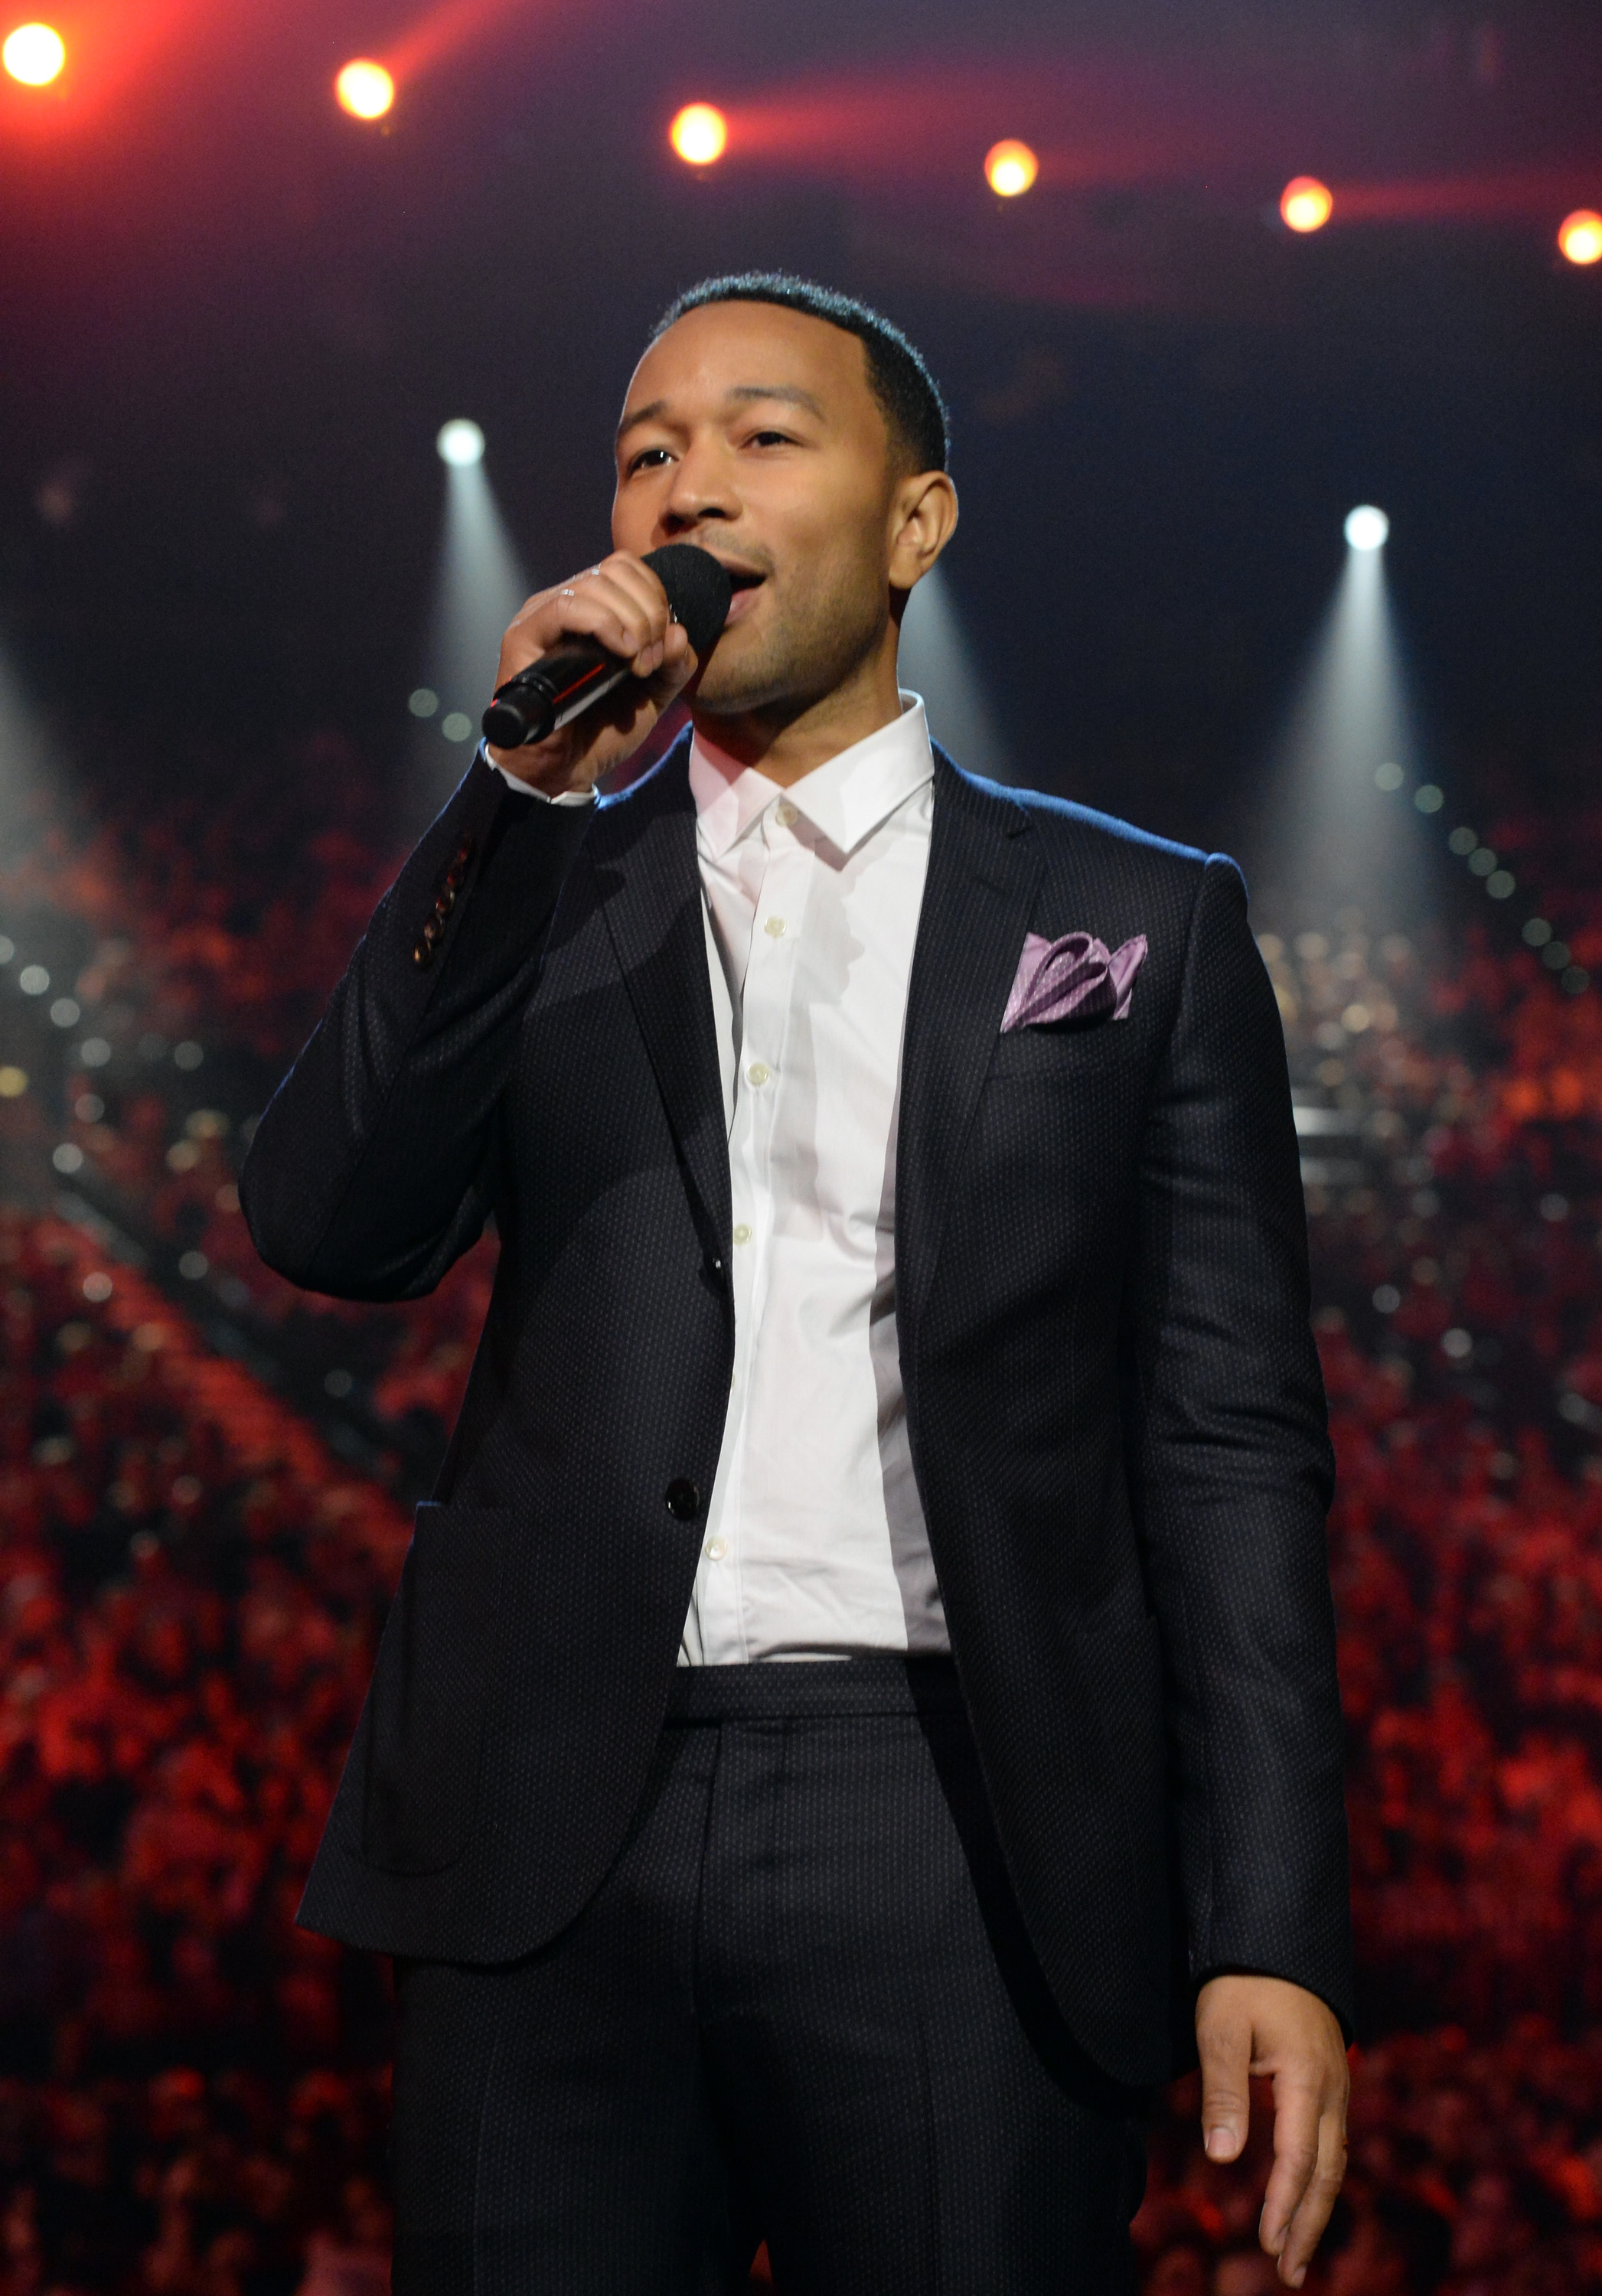 John Legend onstage during the 2015 Billboard Music Awards at MGM Grand Garden Arena on May 17, 2015 in Las Vegas, Nevada.